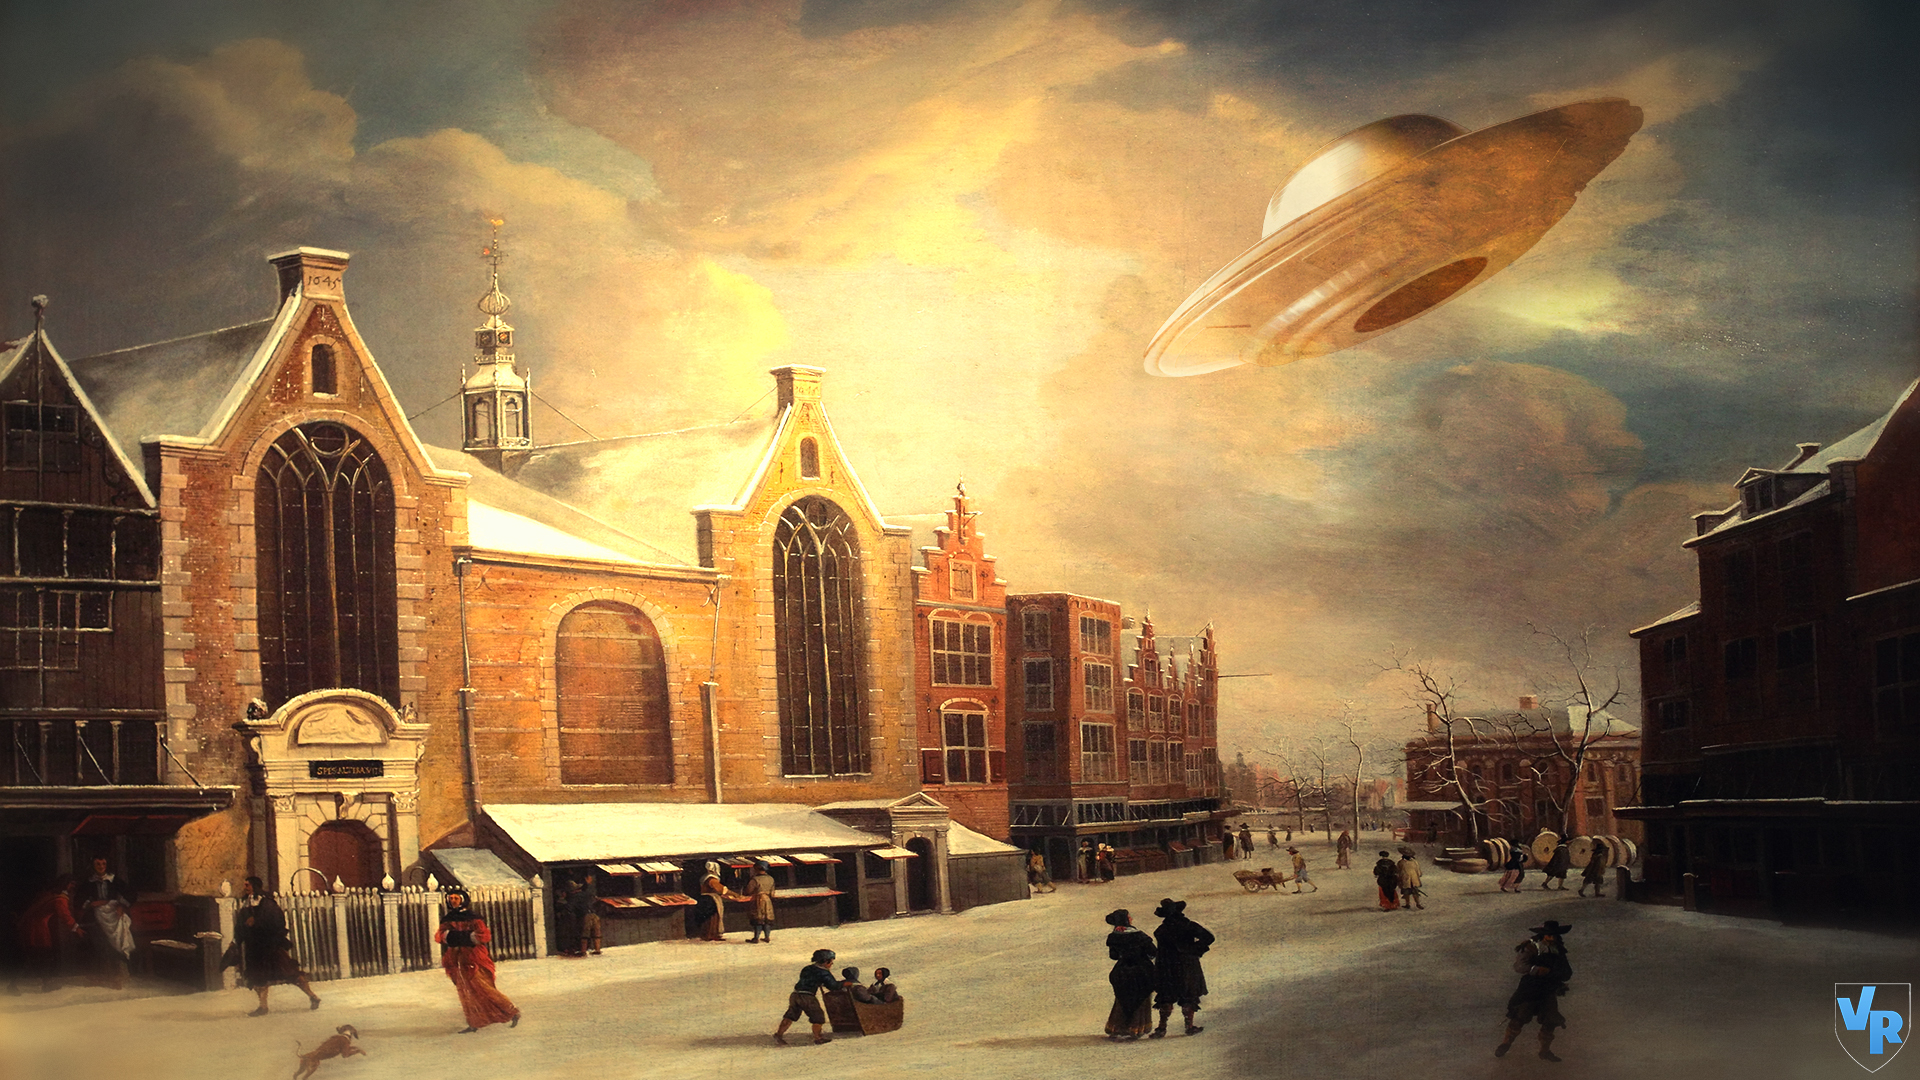 UFO at painting by Vreckovka